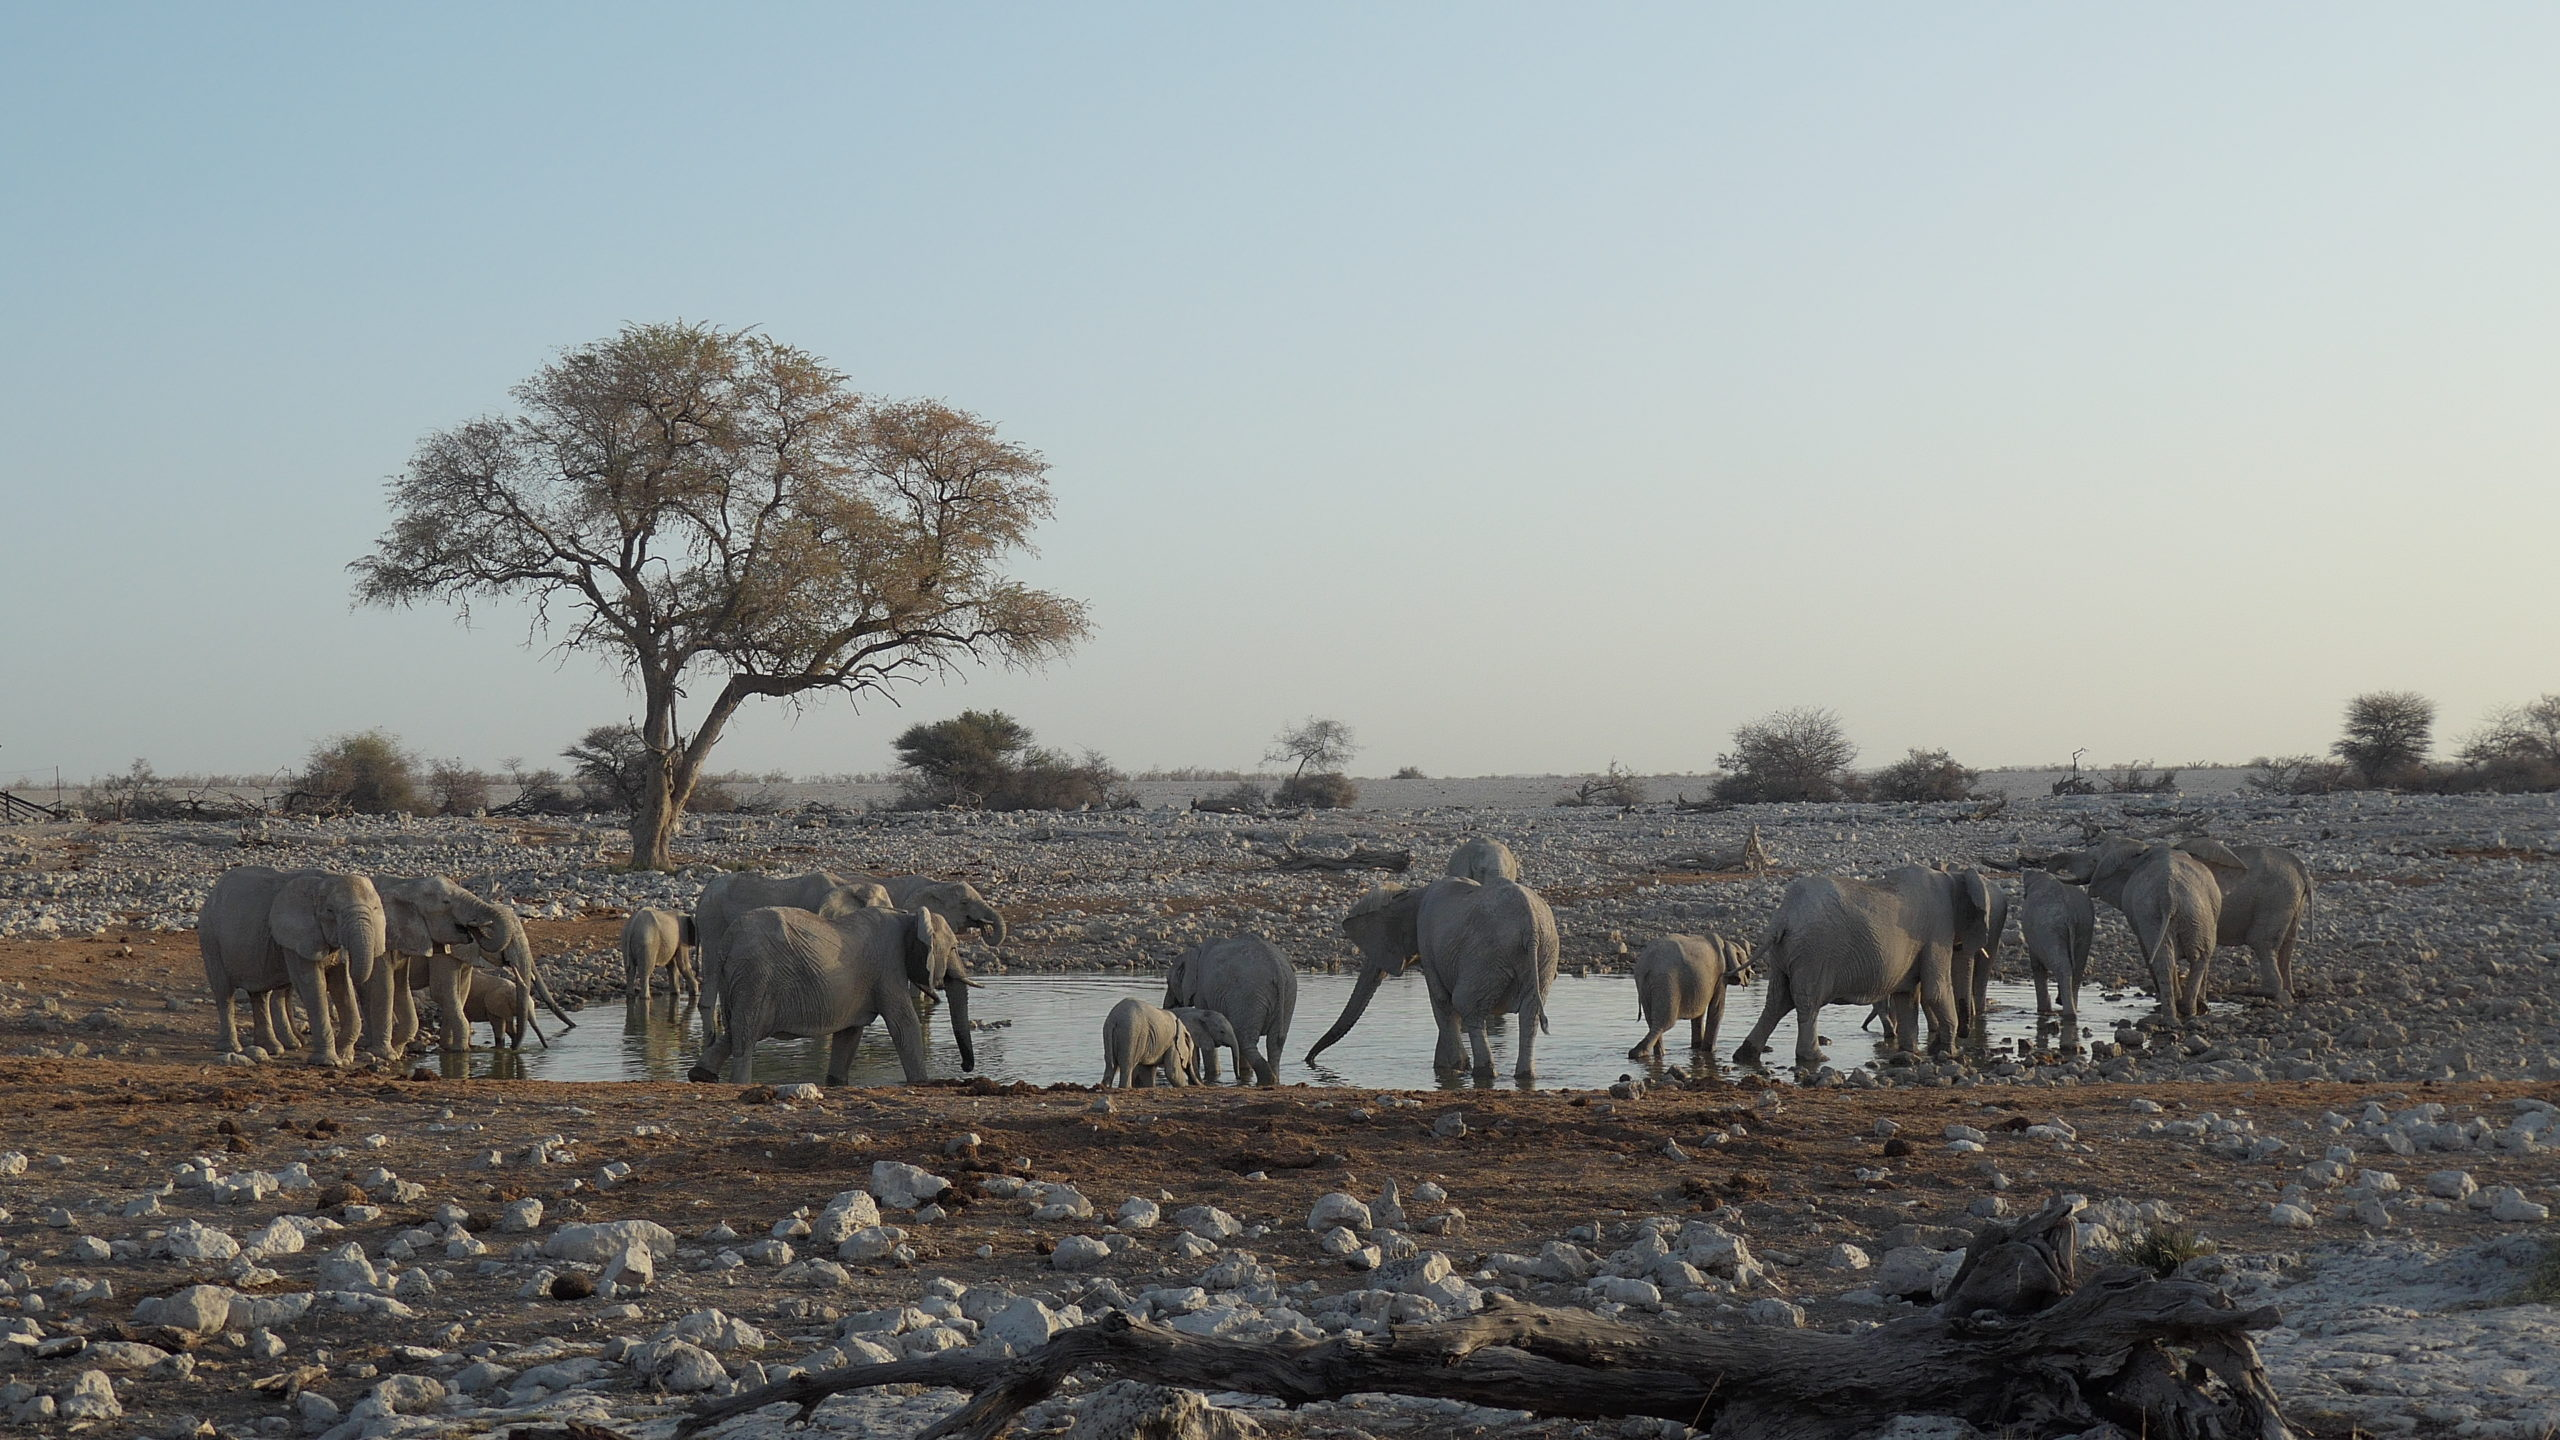 Elephants quench their thirst at a watehole.